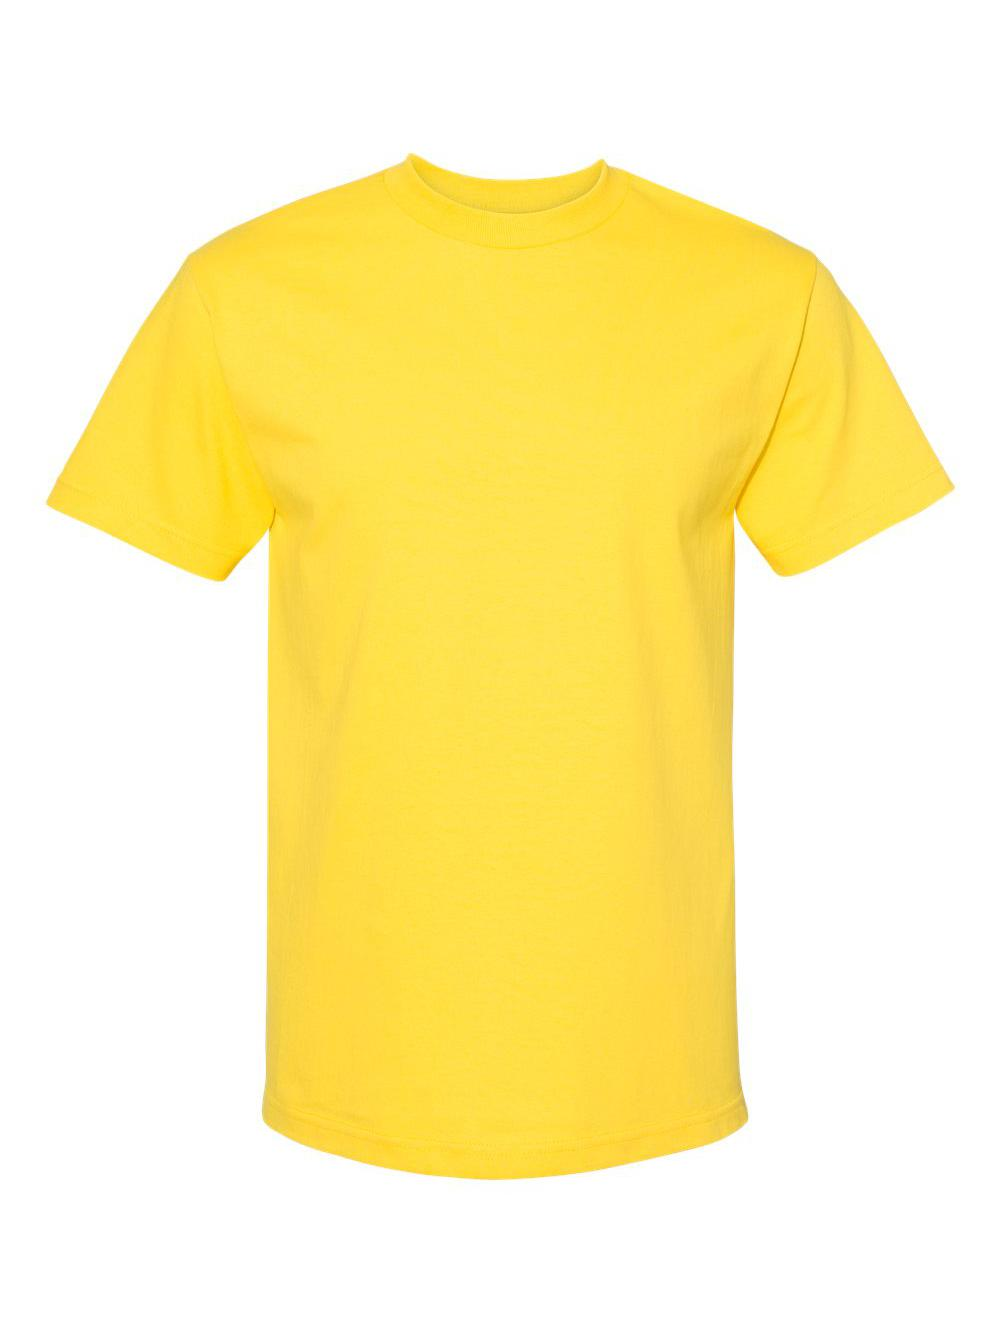 ALSTYLE-Classic-T-Shirt-1301 thumbnail 89